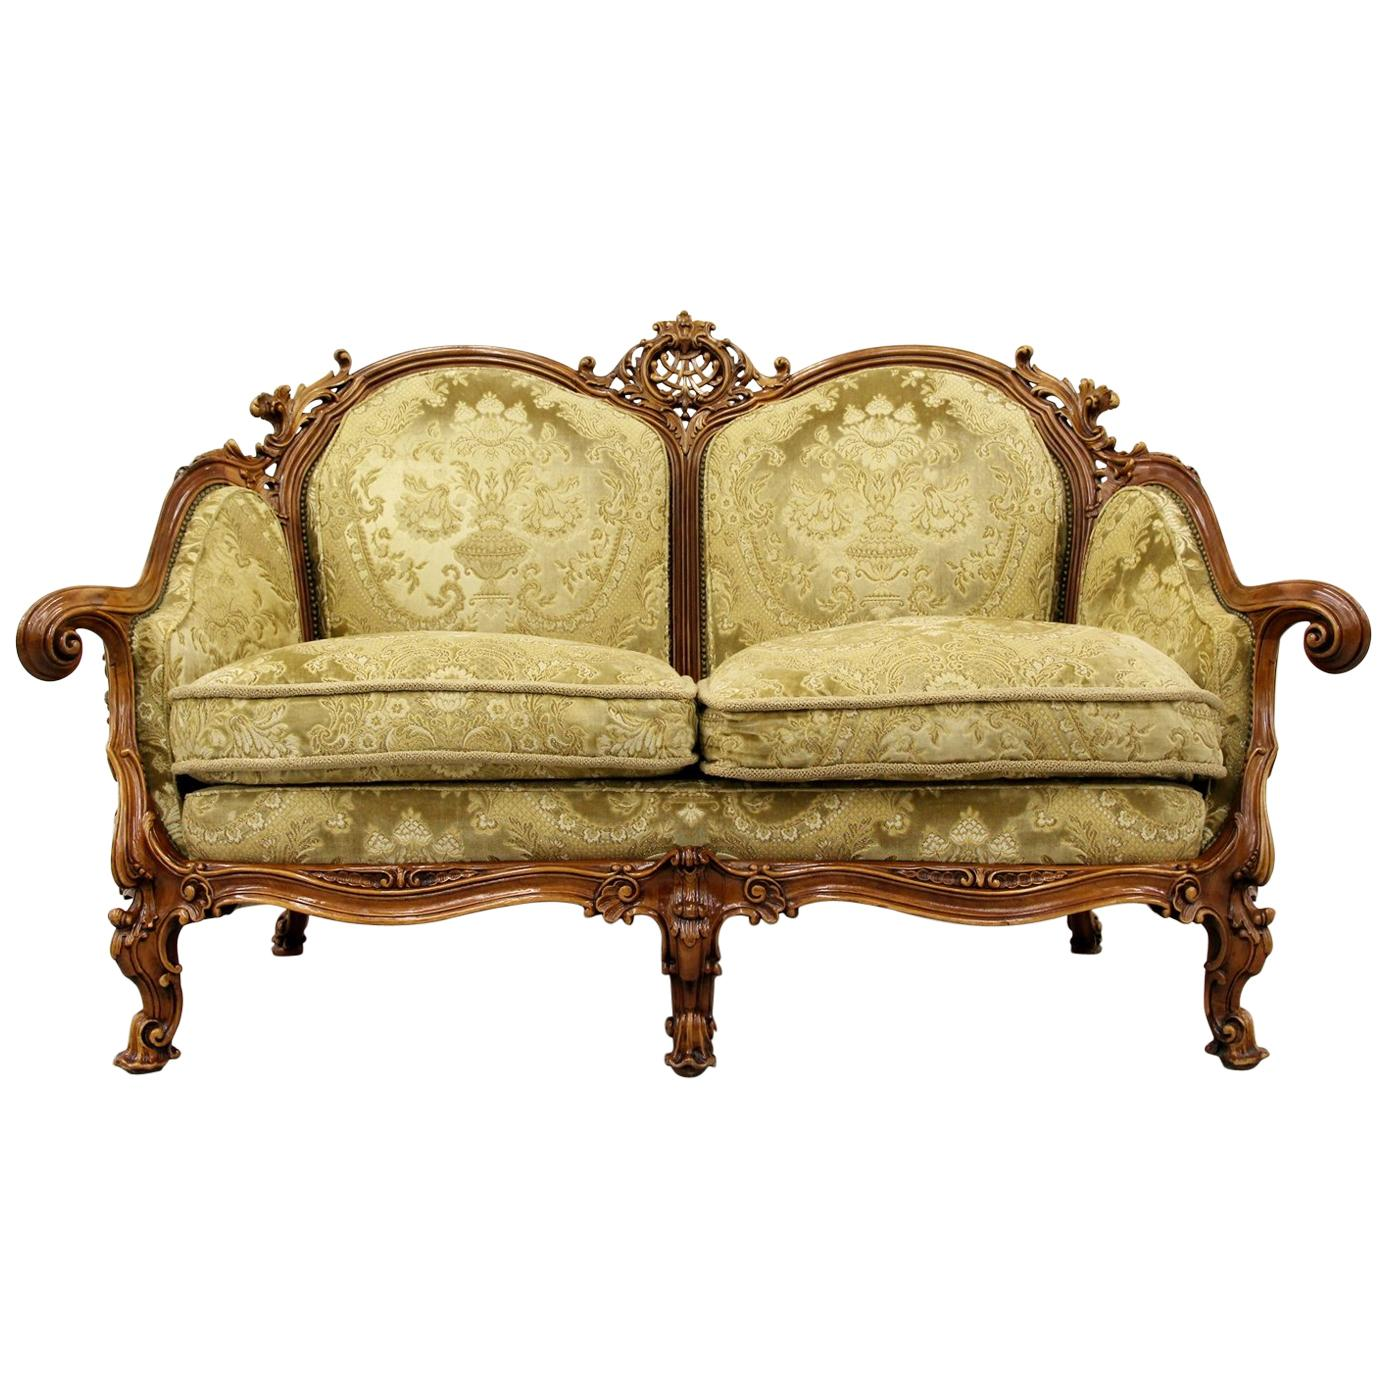 Sofa L Form Mit Sessel Chippendale Chesterfield Sofa Couch Sessel Barock Antik Barock